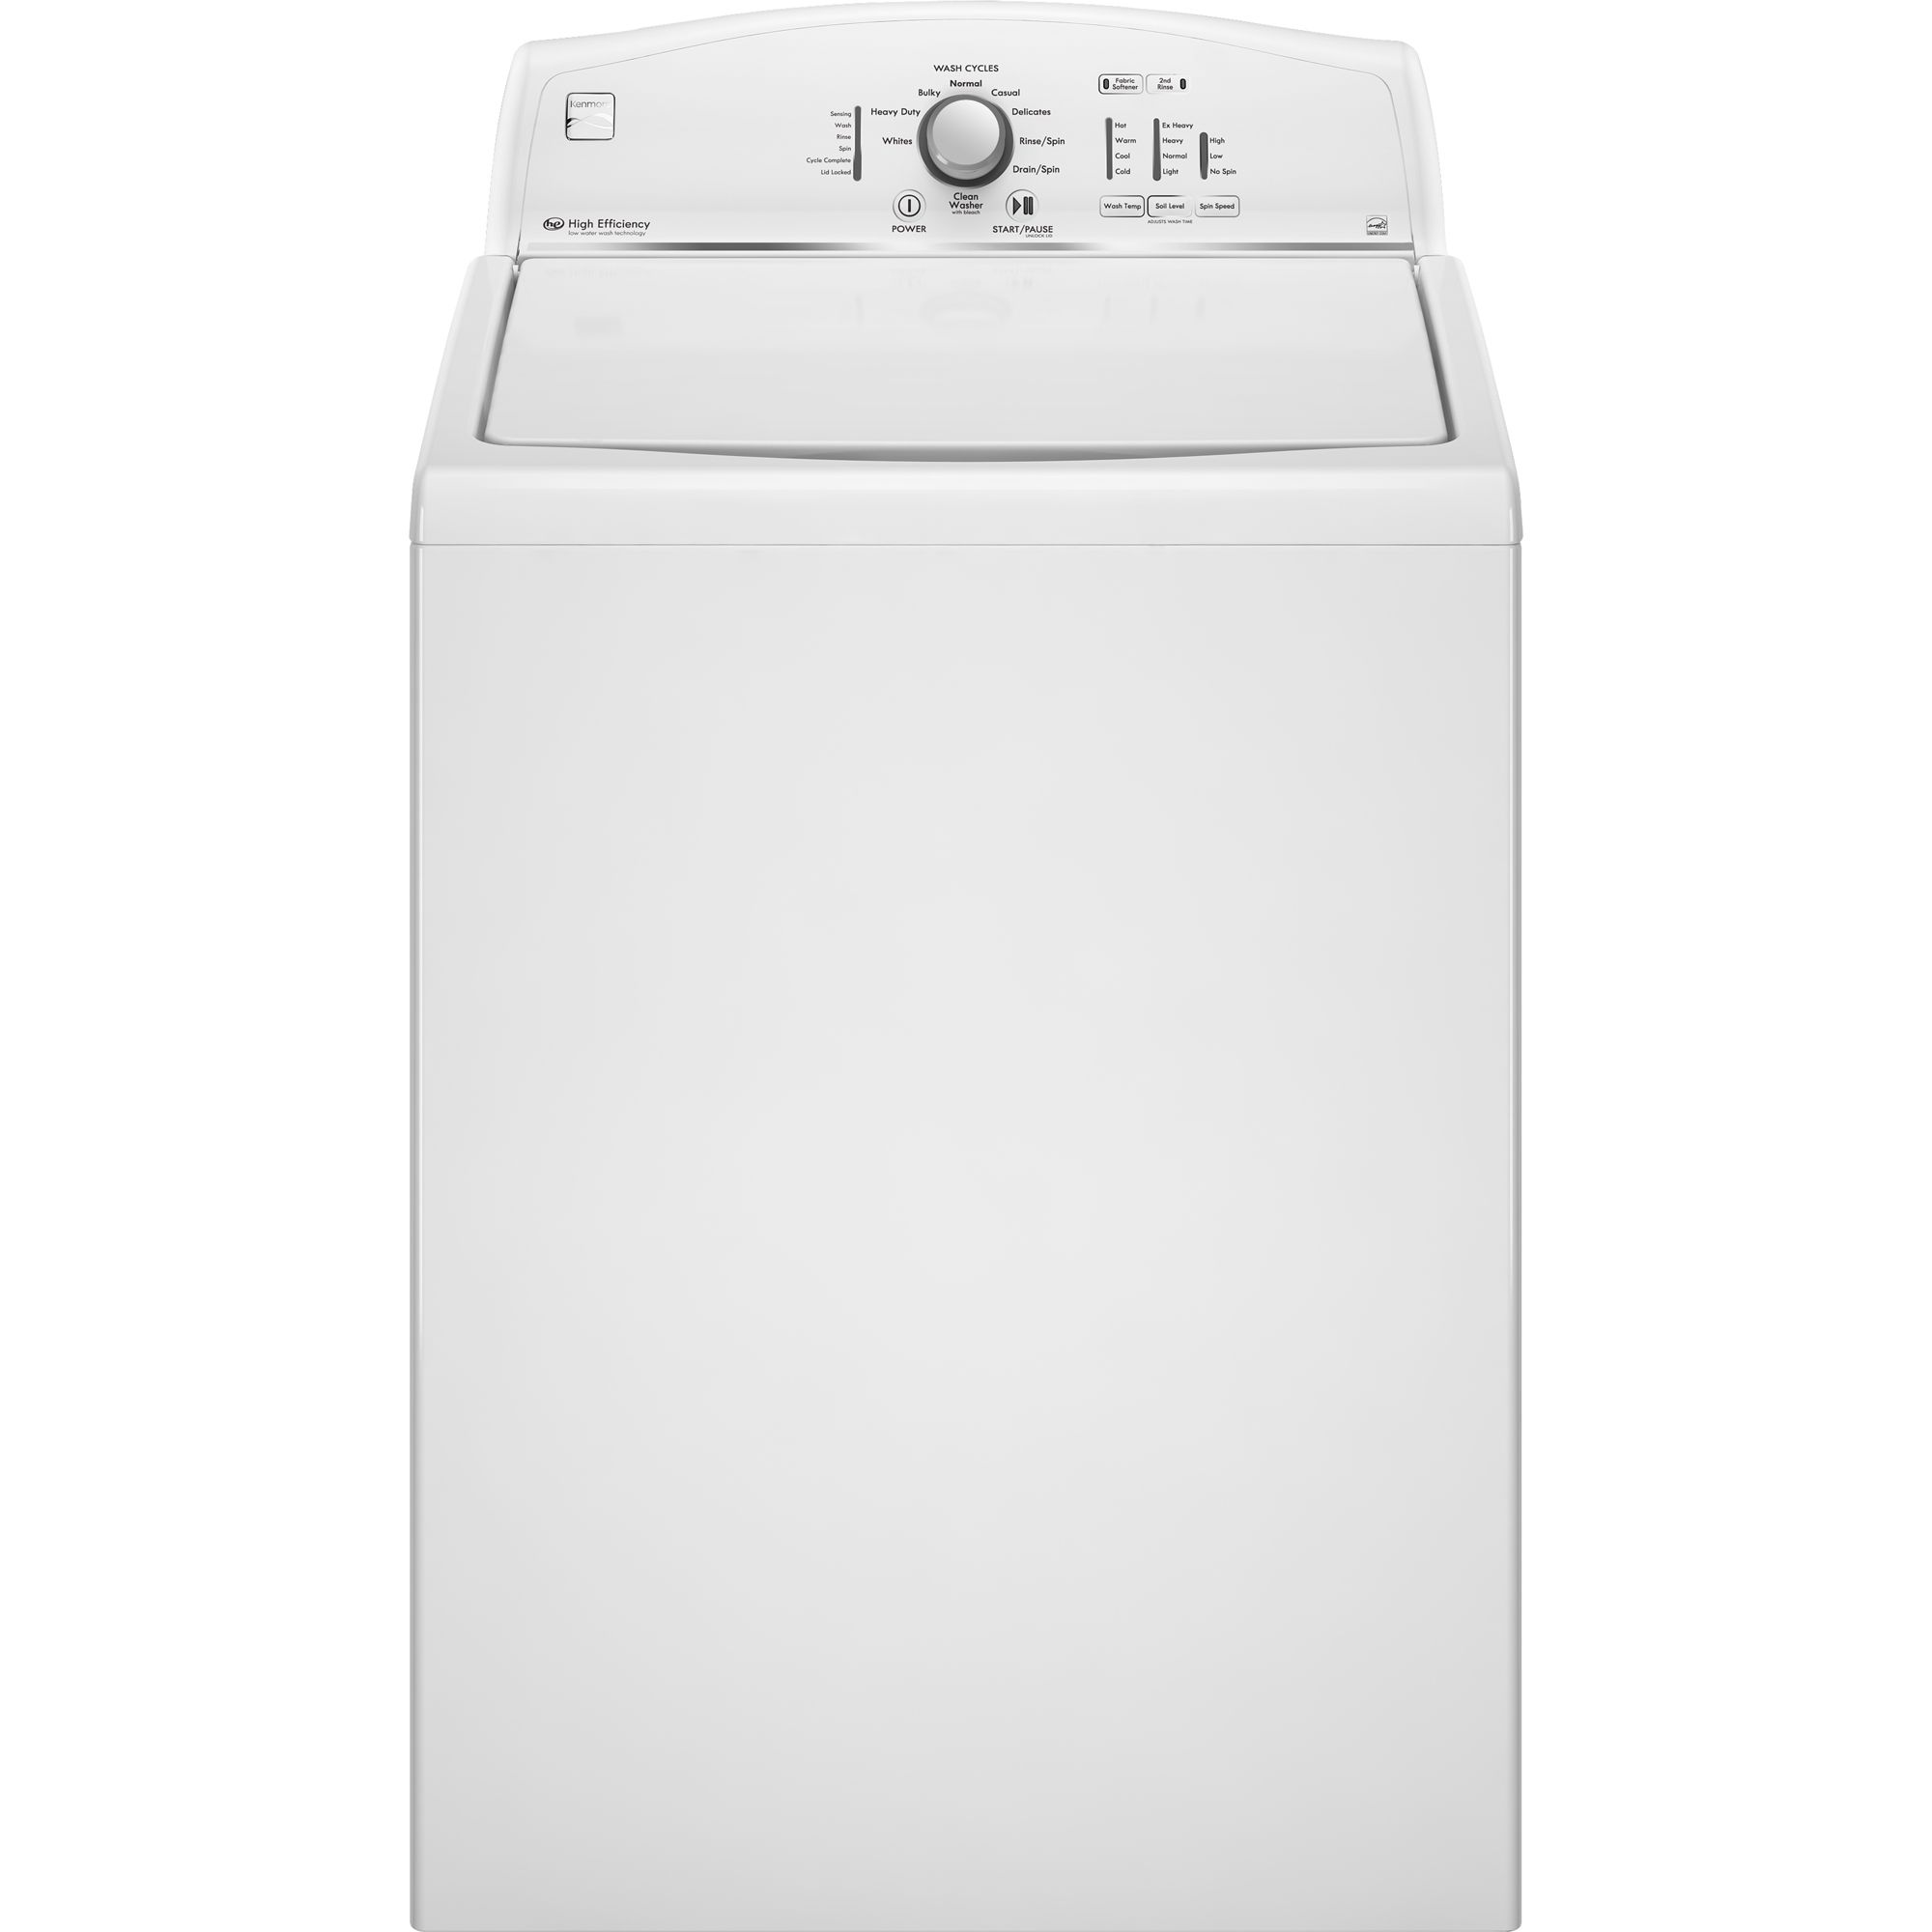 Kenmore Top Load Washer 3 6 Cu Ft 26002 Sears - Top Loading Washers